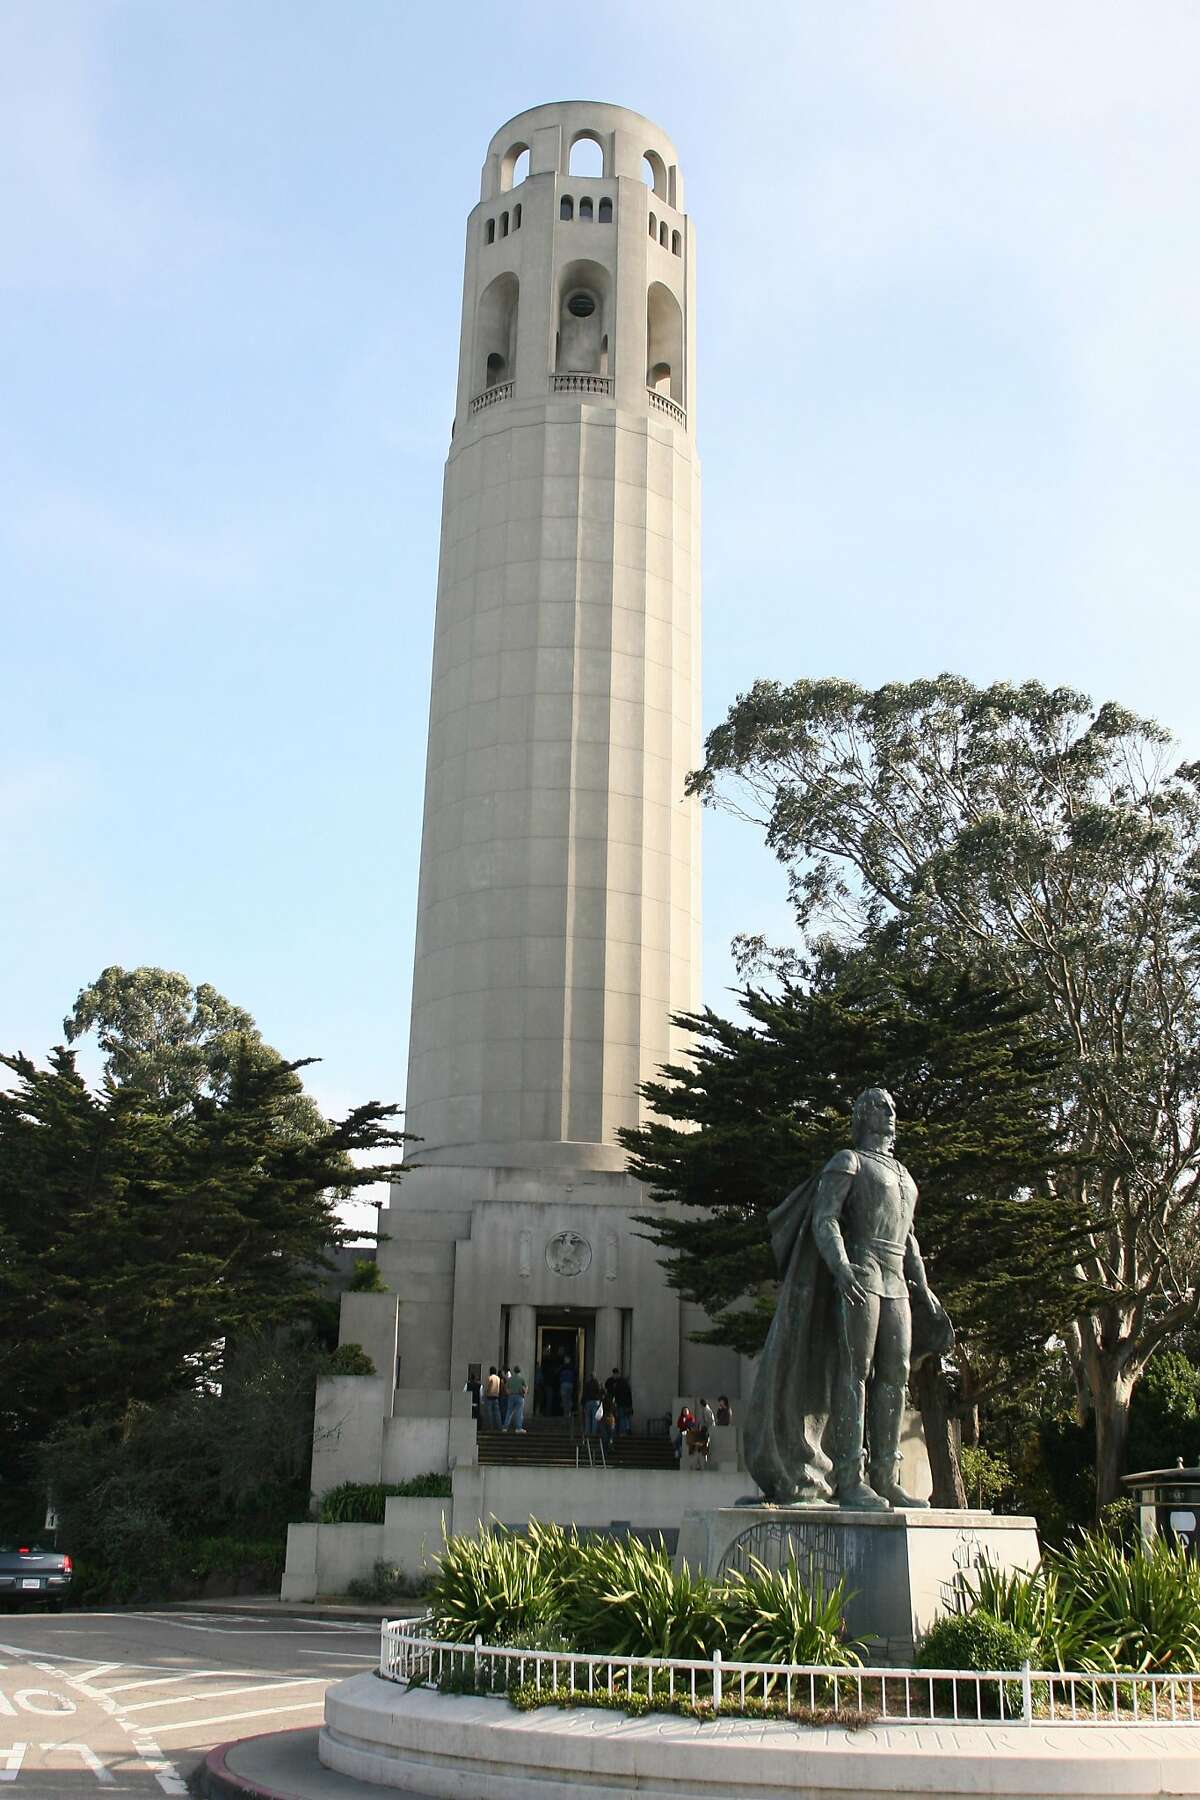 Coit Tower on Telegraph Hill in San Francisco, California. The tower was built with funds from philanthropist Lillie Hitchcock Coit. (Ben Noey Jr./Fort Worth Star-Telegram/MCT)